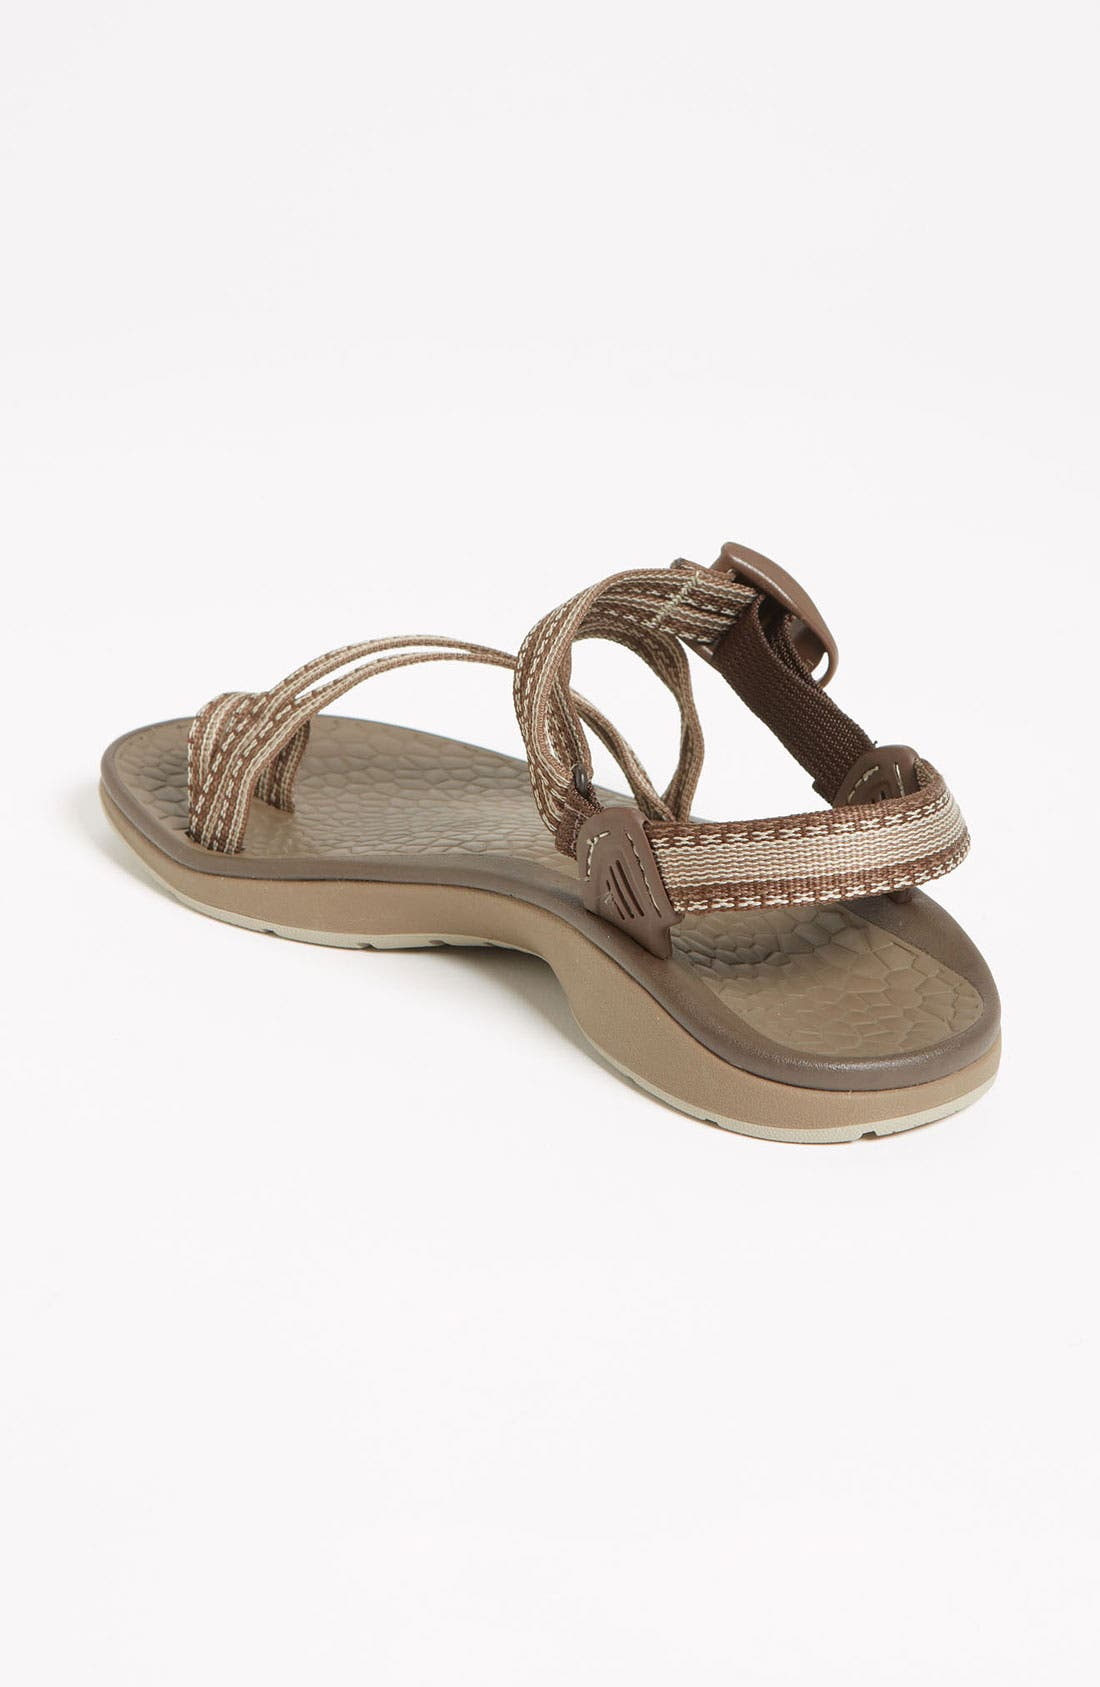 Alternate Image 2  - Chaco 'Fantasia' Sandal